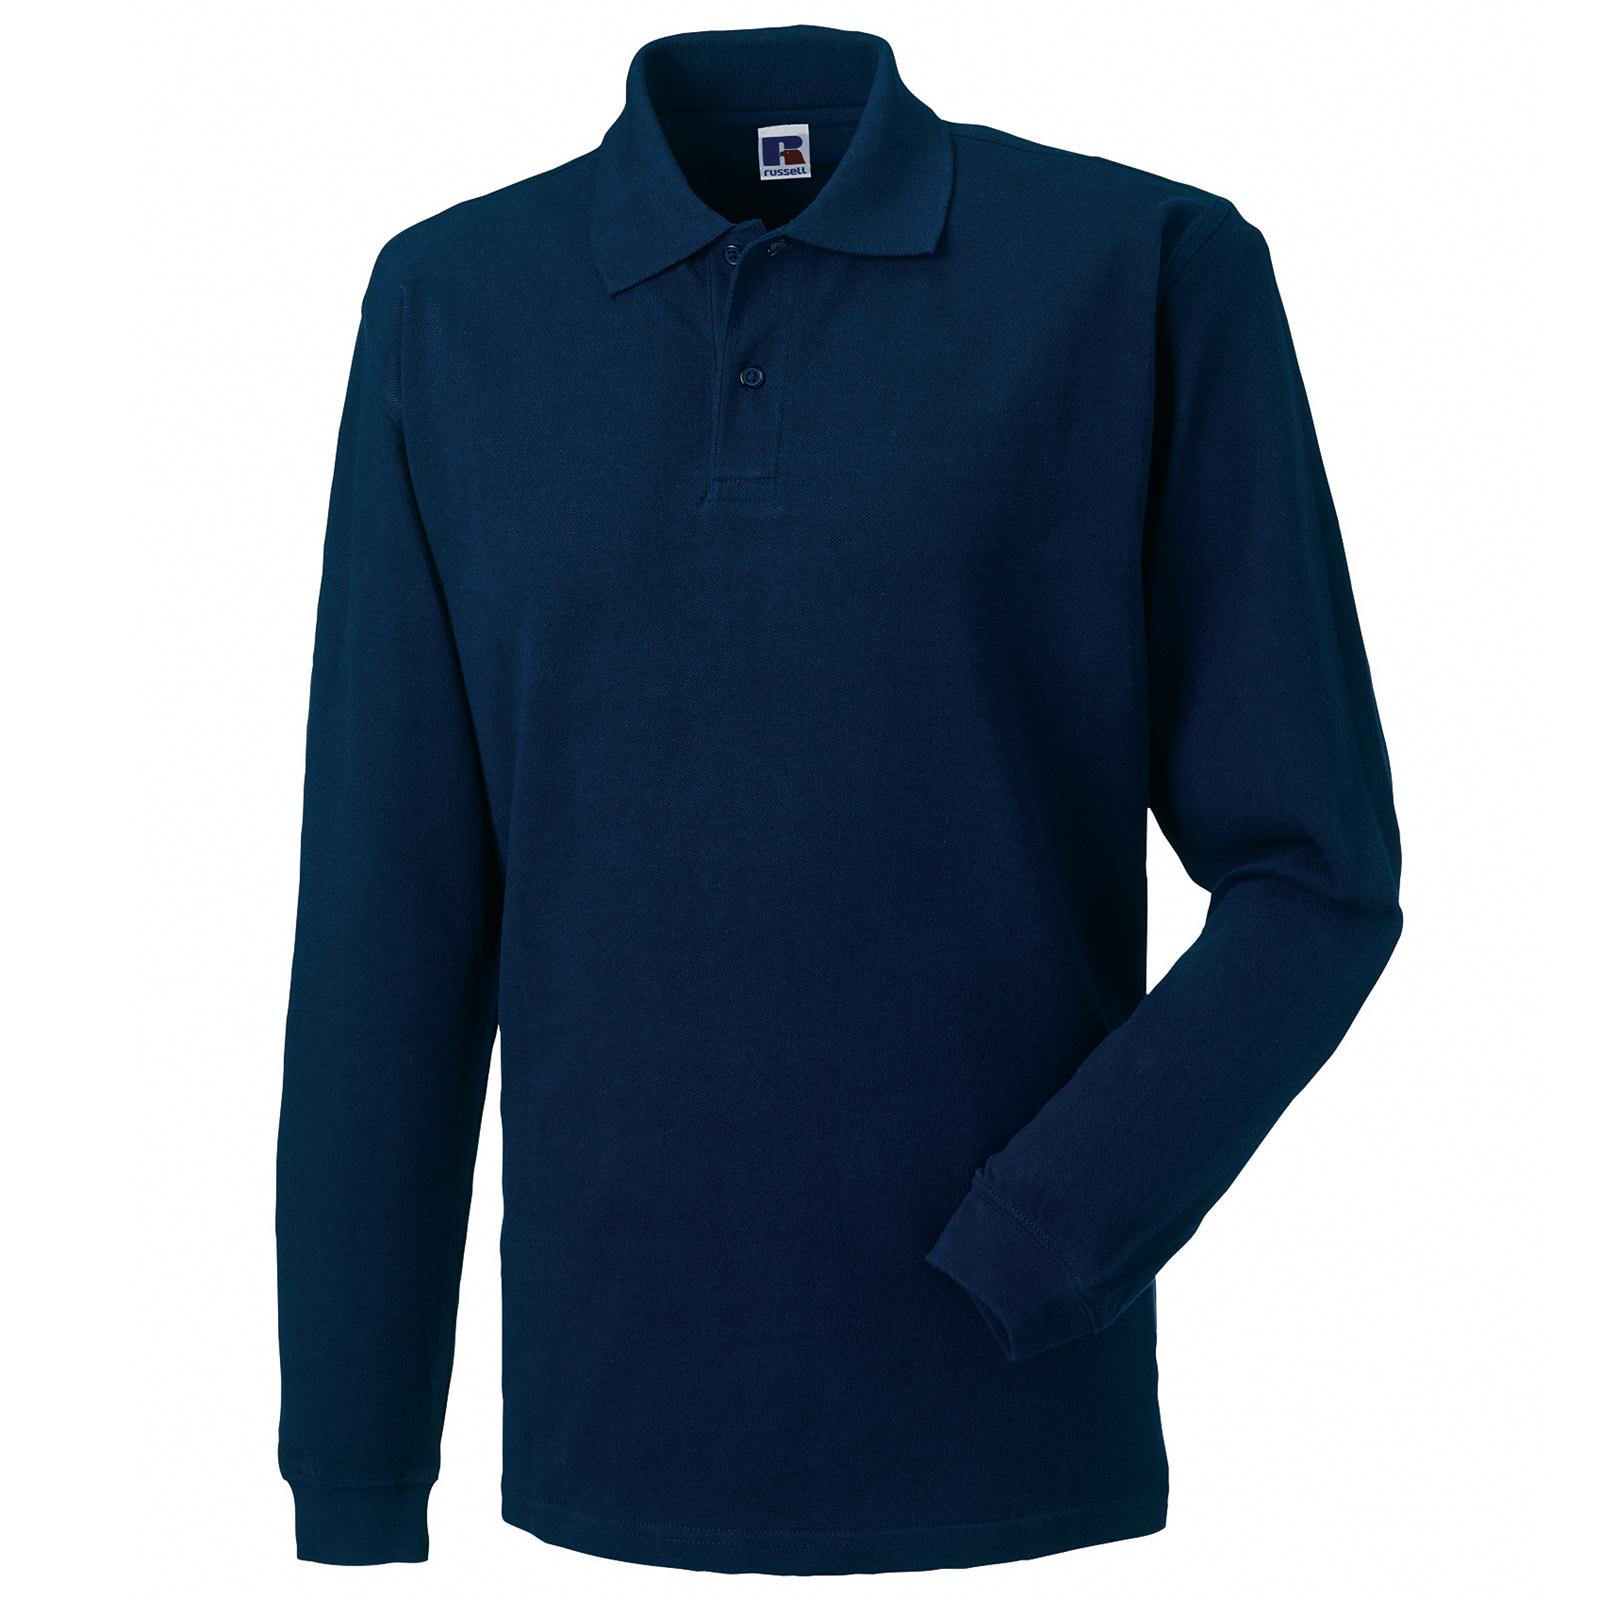 New russell long sleeve 100 cotton pique polo shirt in 5 for Mens long sleeve pique polo shirts